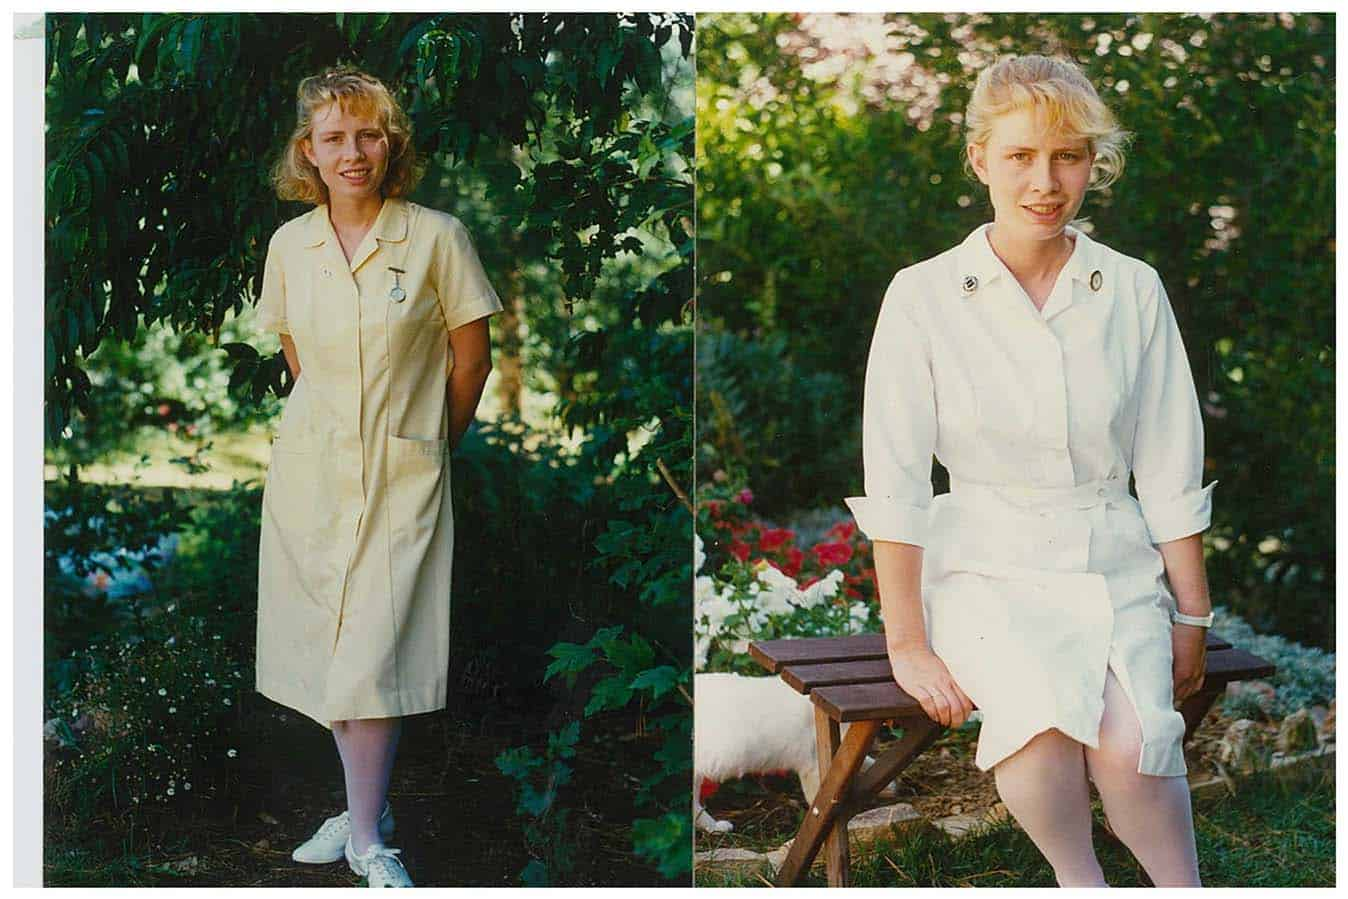 c05d24ee844 The changing face of nursing uniforms - ANMJ